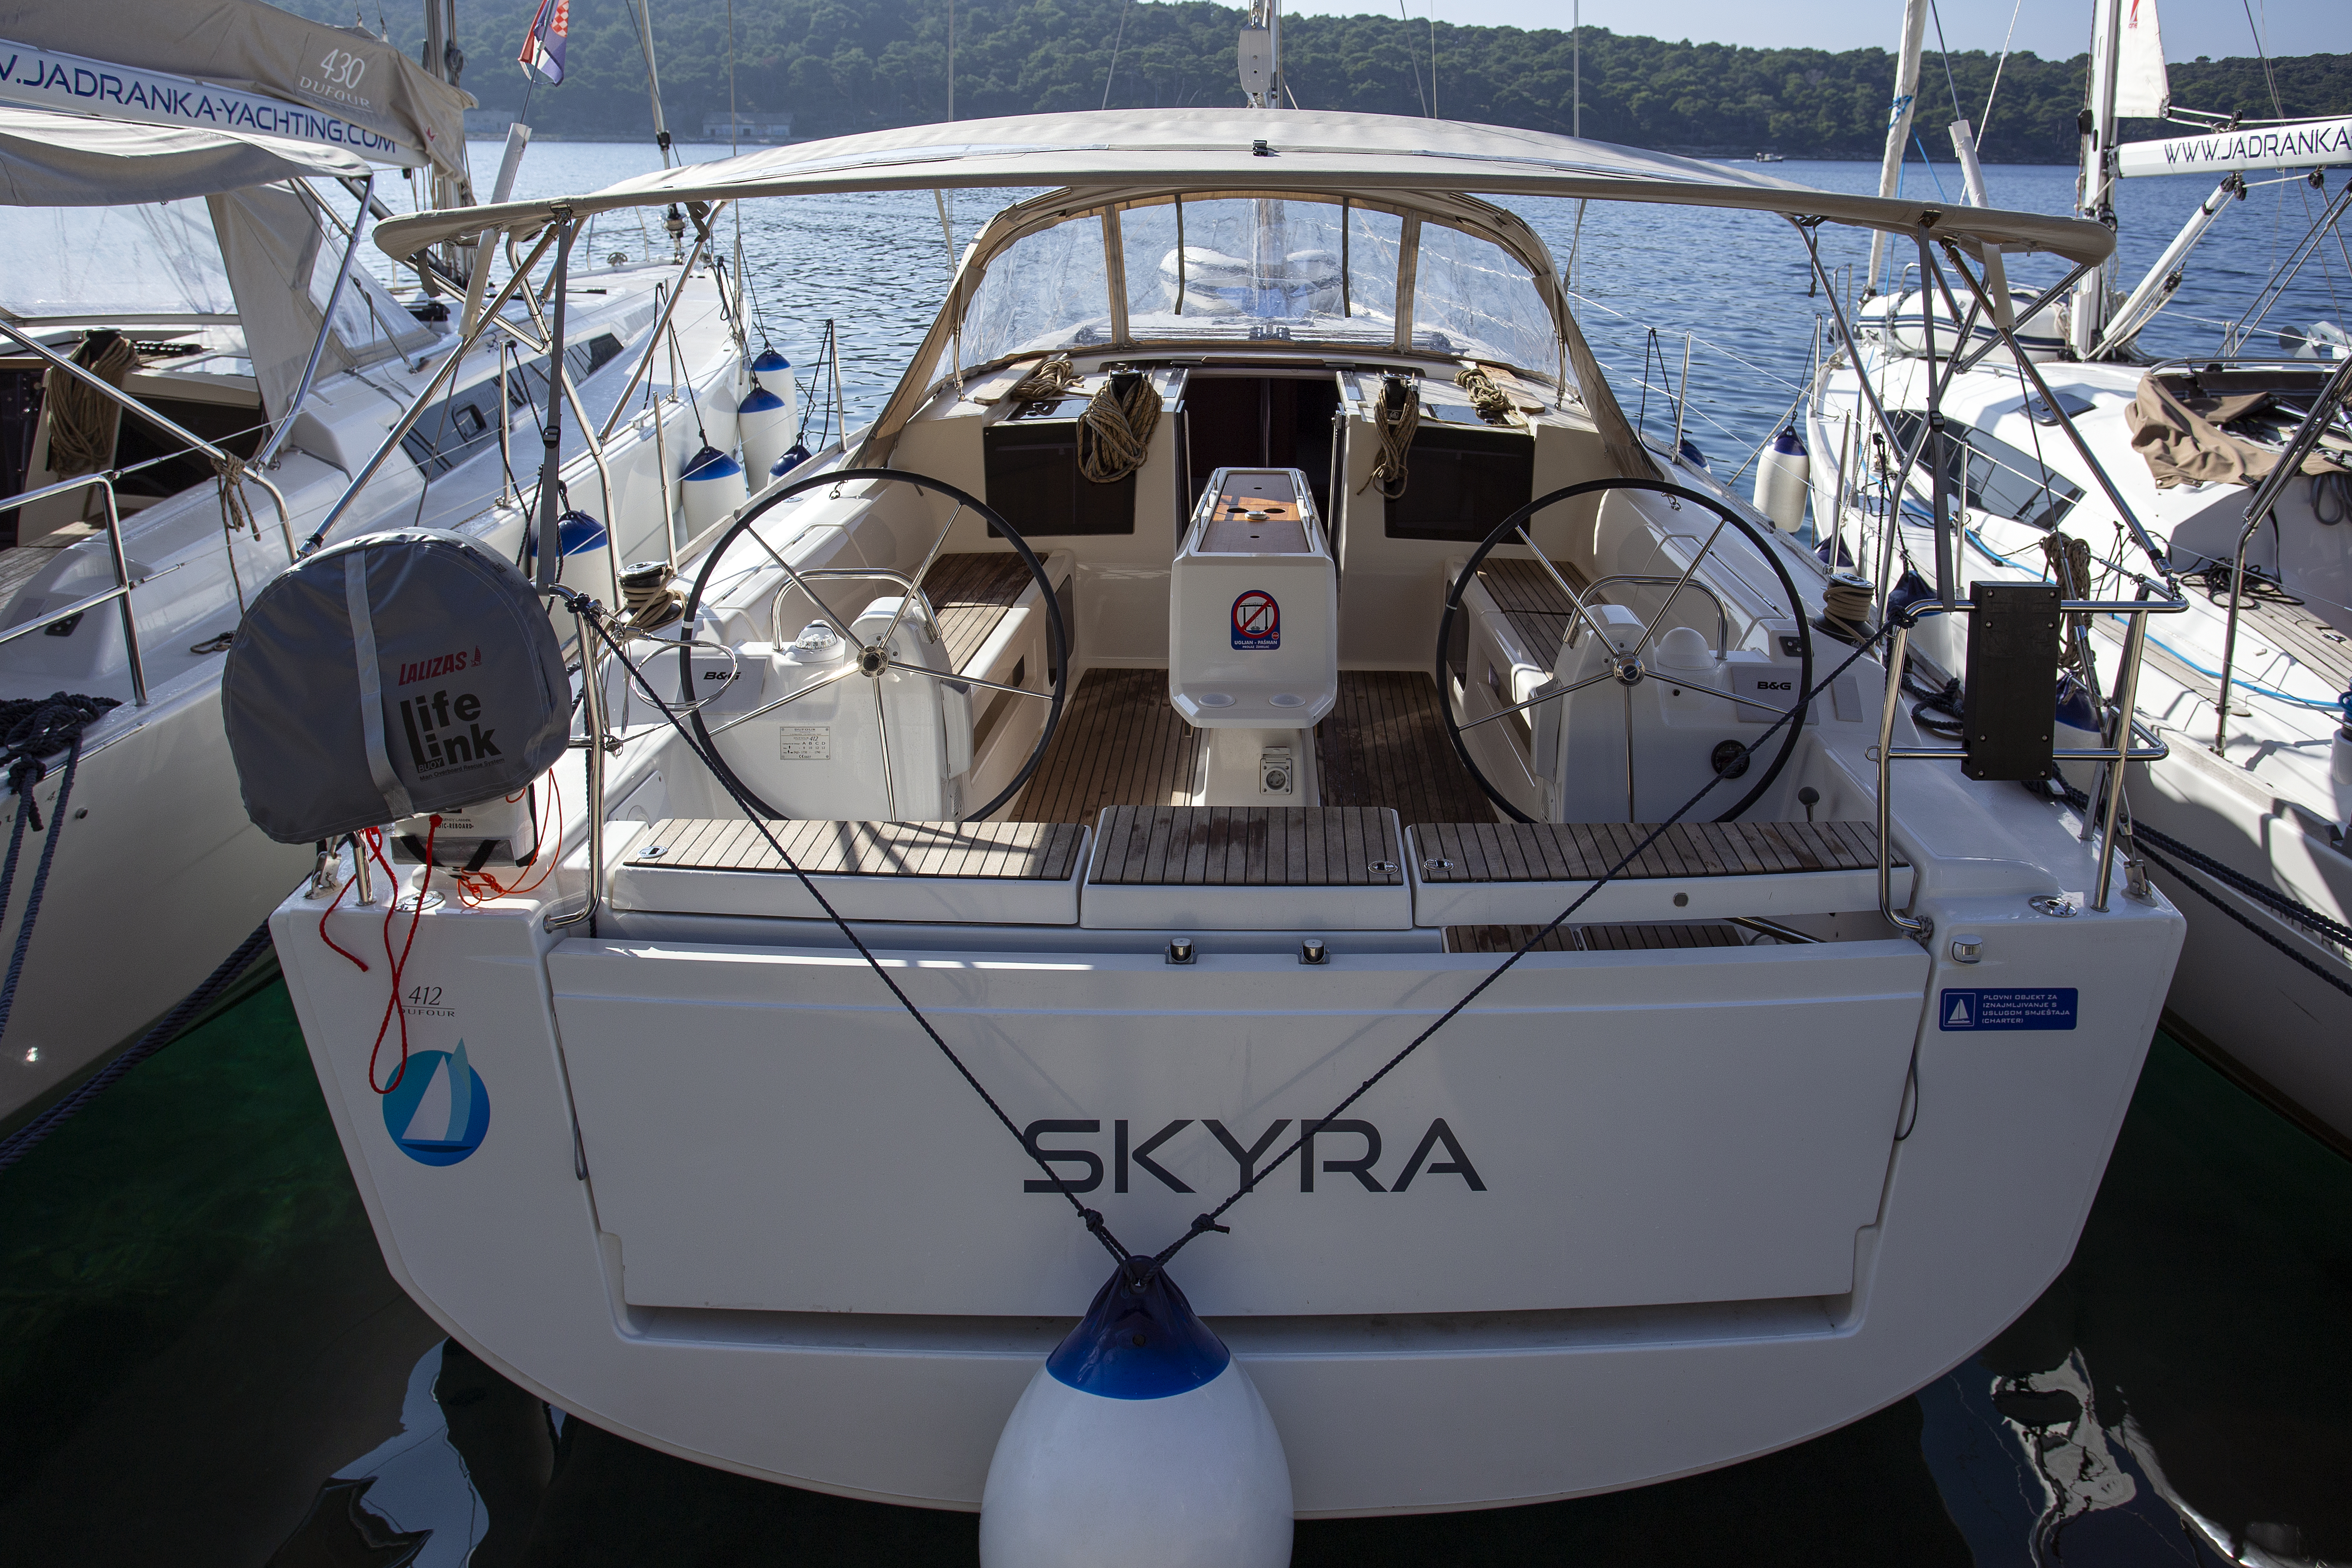 Dufour 412 Grand large (Skyra)  - 25